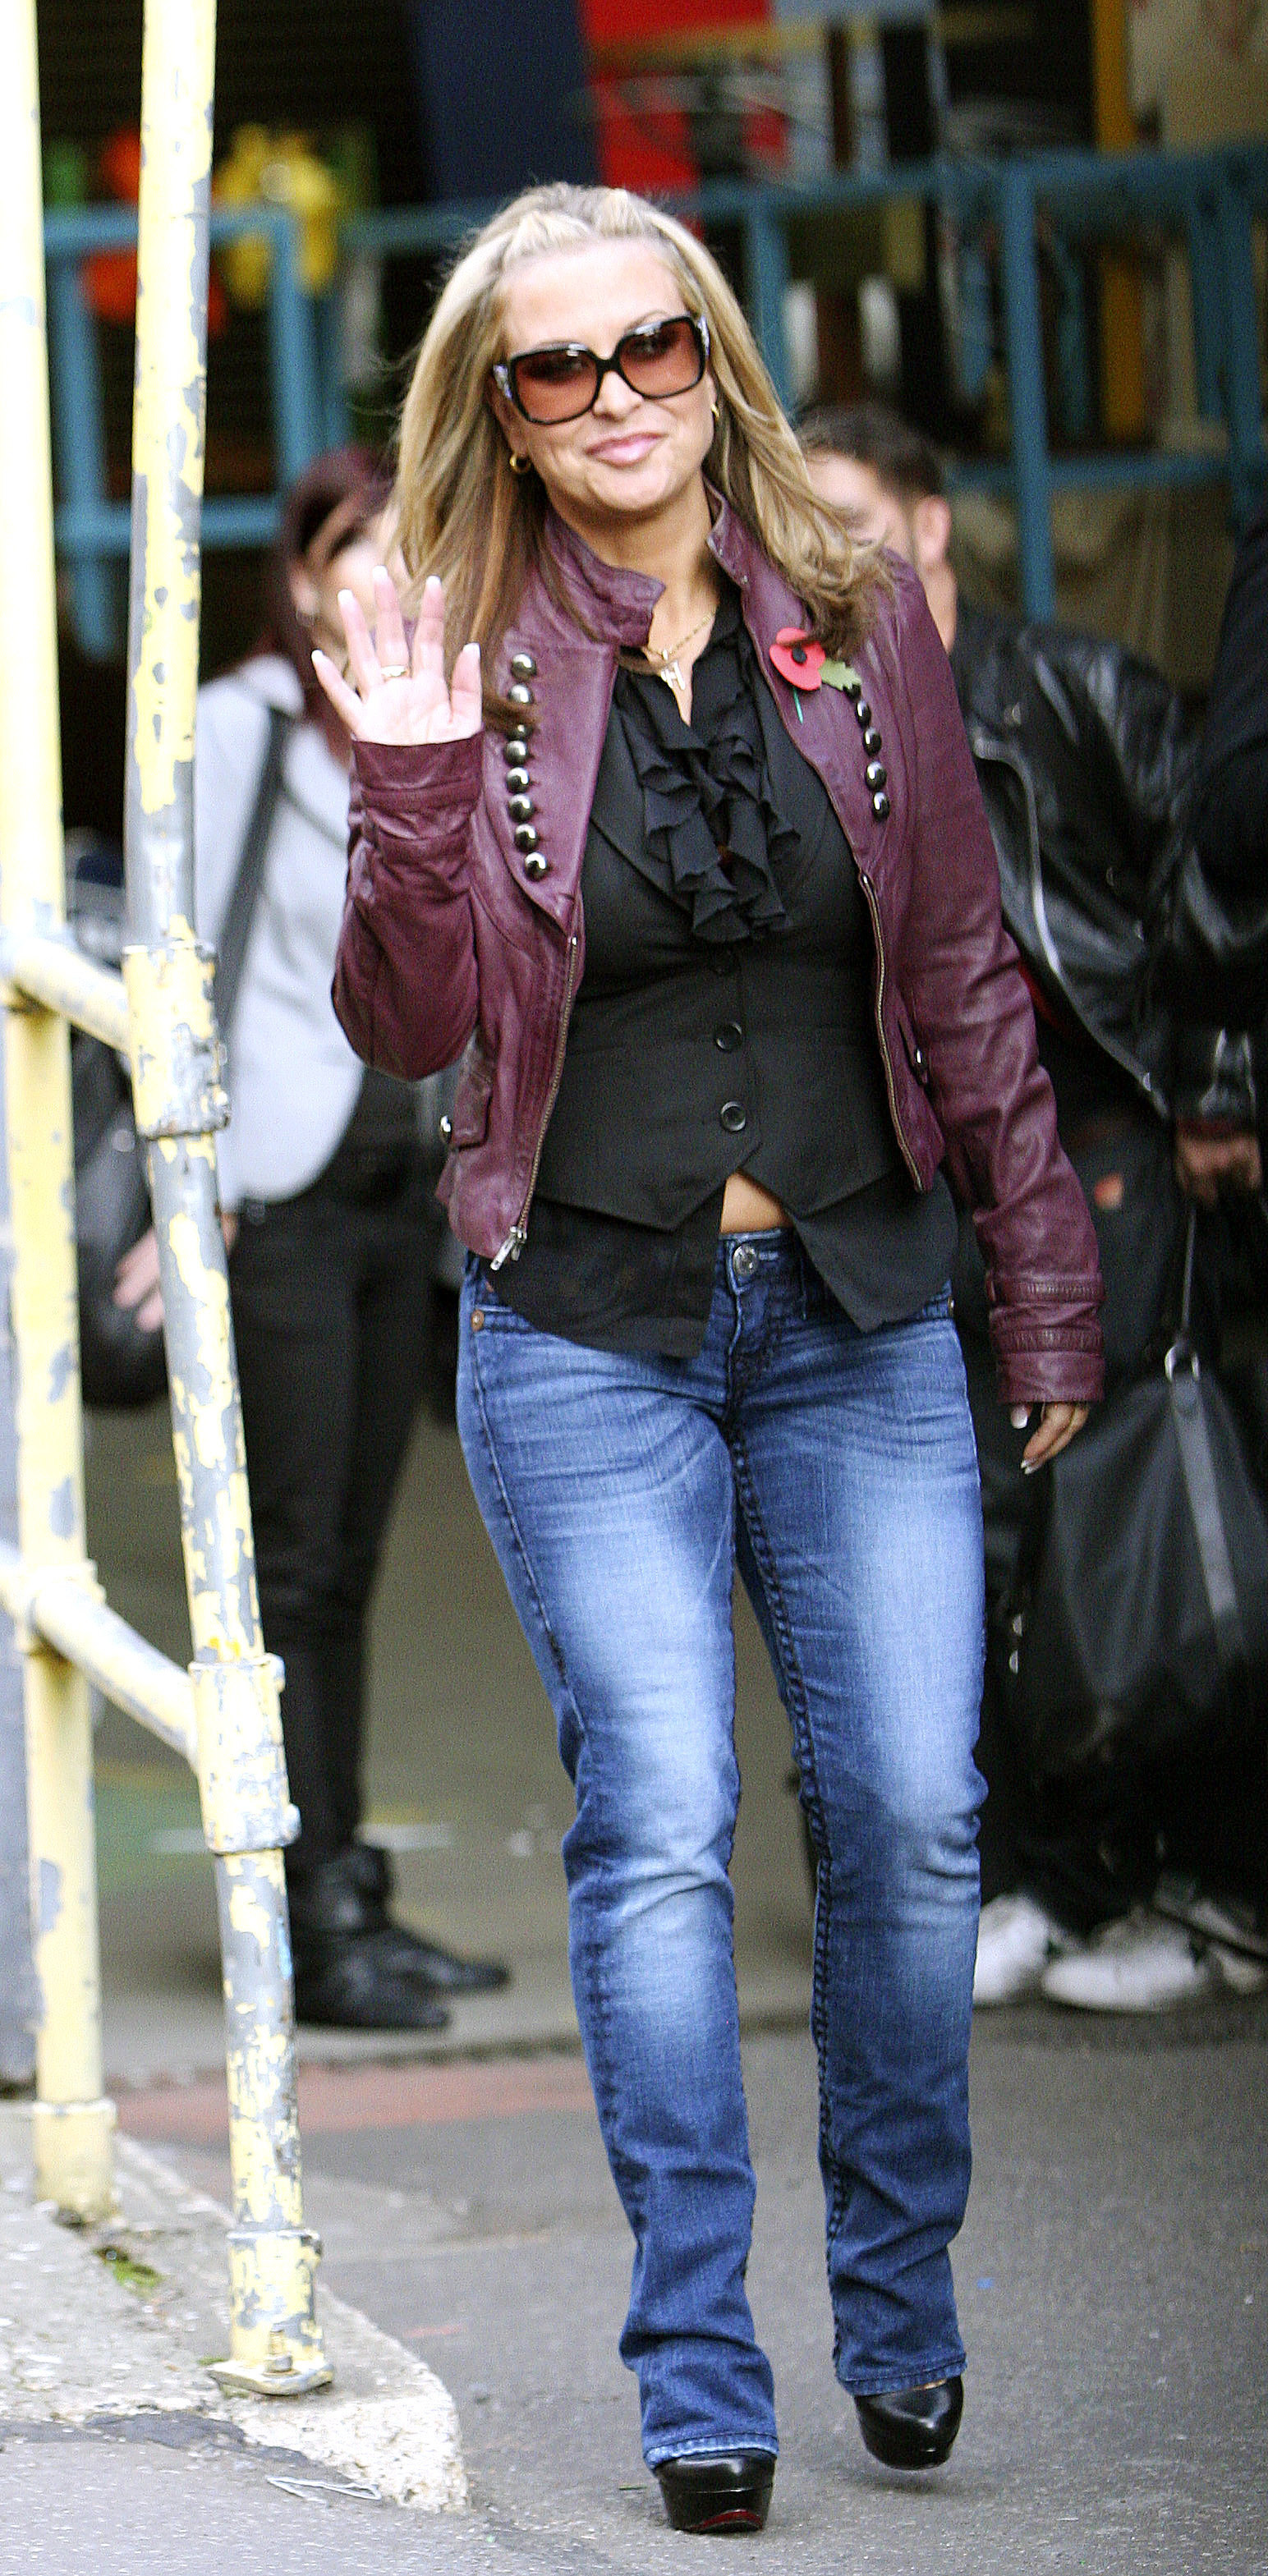 anastacia waving to fans